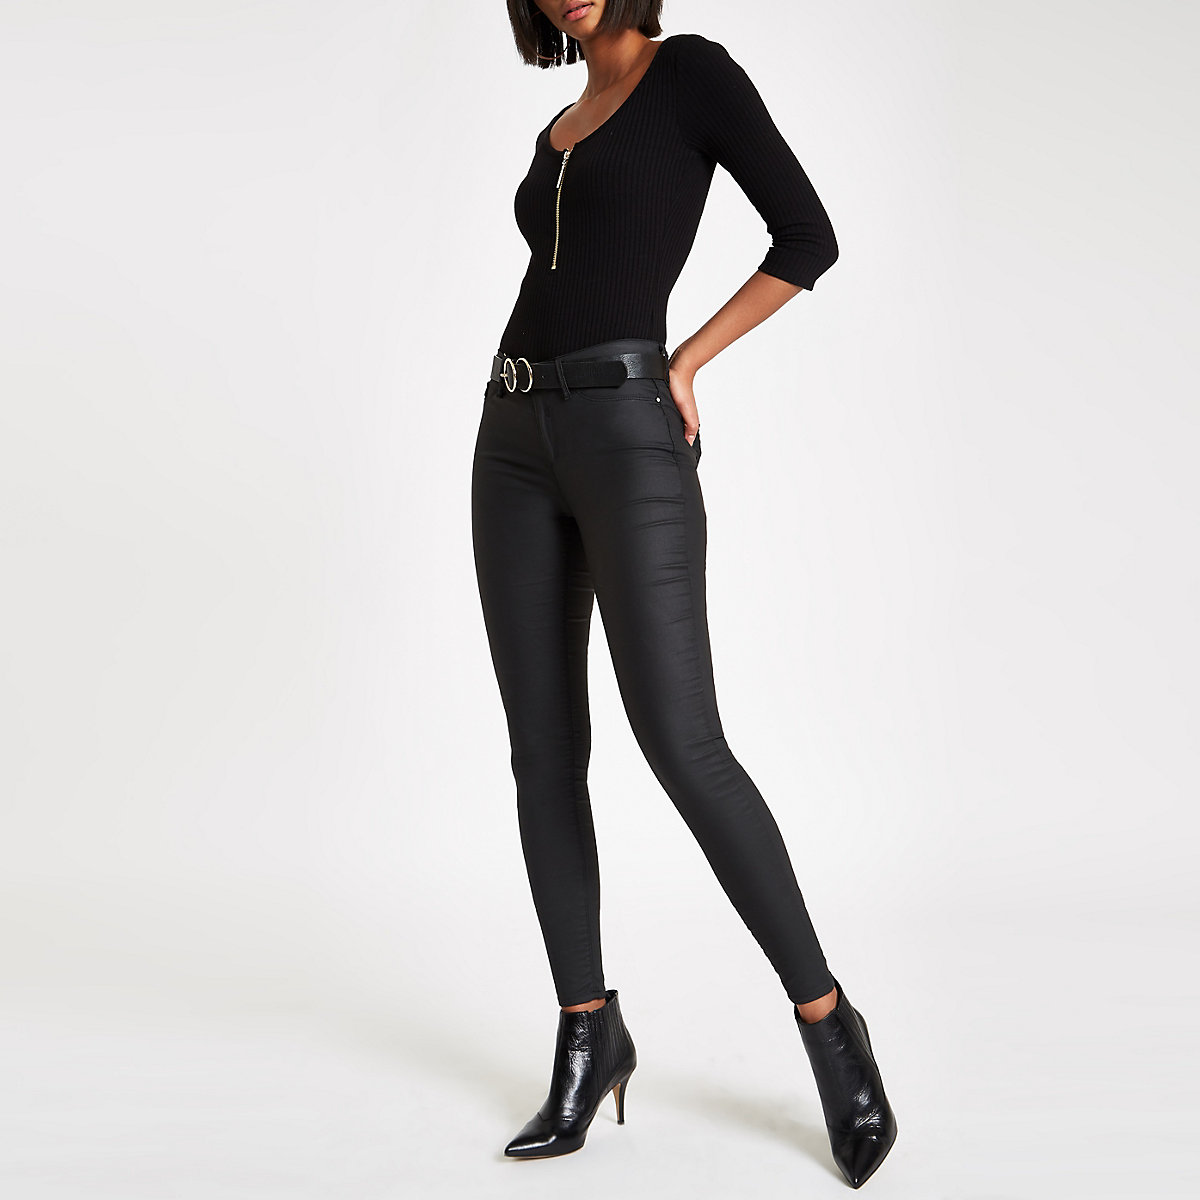 Black diamante zip long sleeve bodysuit